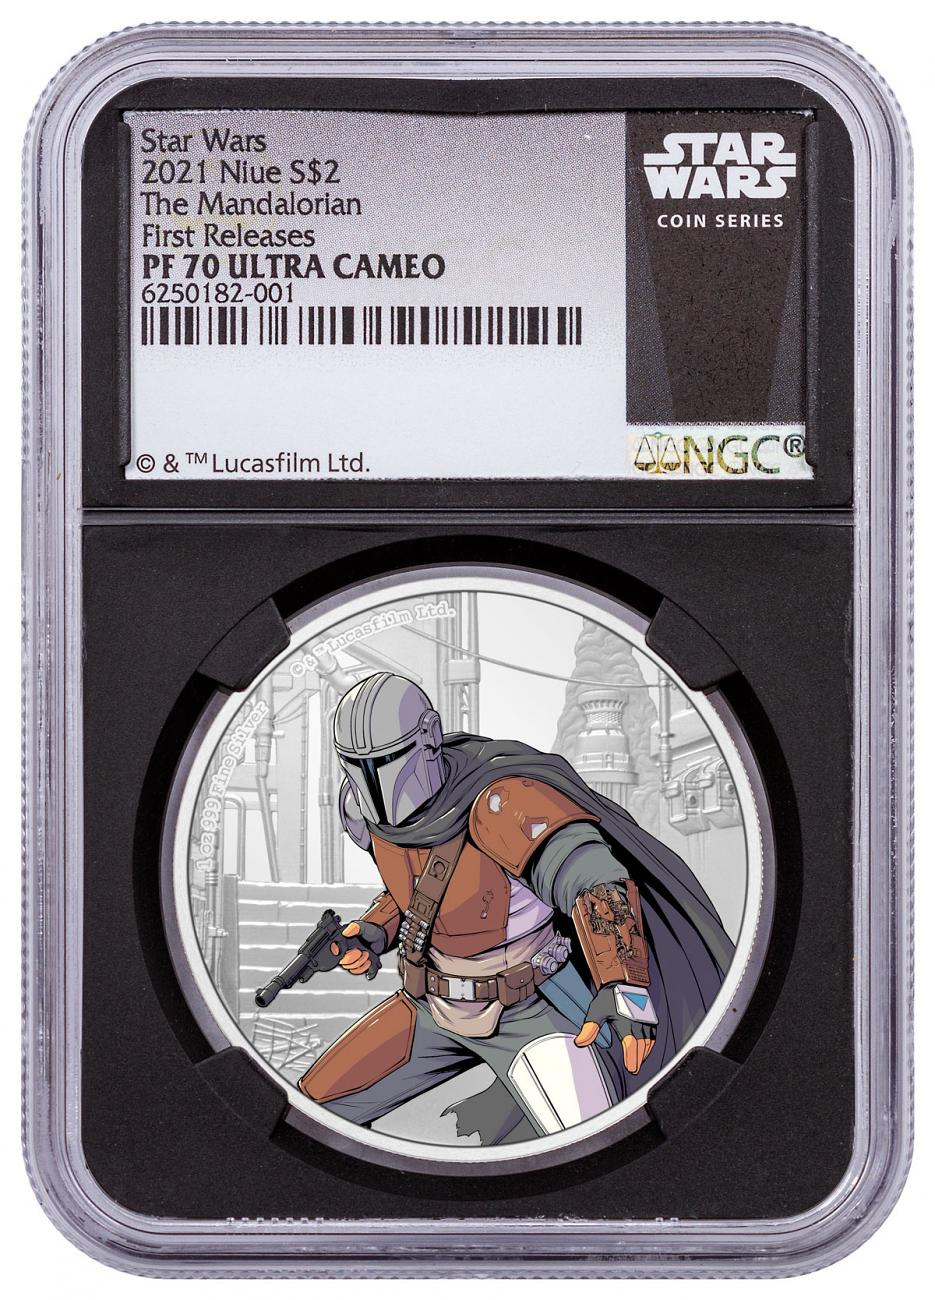 2021 Niue Star Wars - Mandalorian 1 oz Silver Colorized Proof $2 Coin NGC PF70 FR COA Black Core Holder Exclusive Star Wars Label